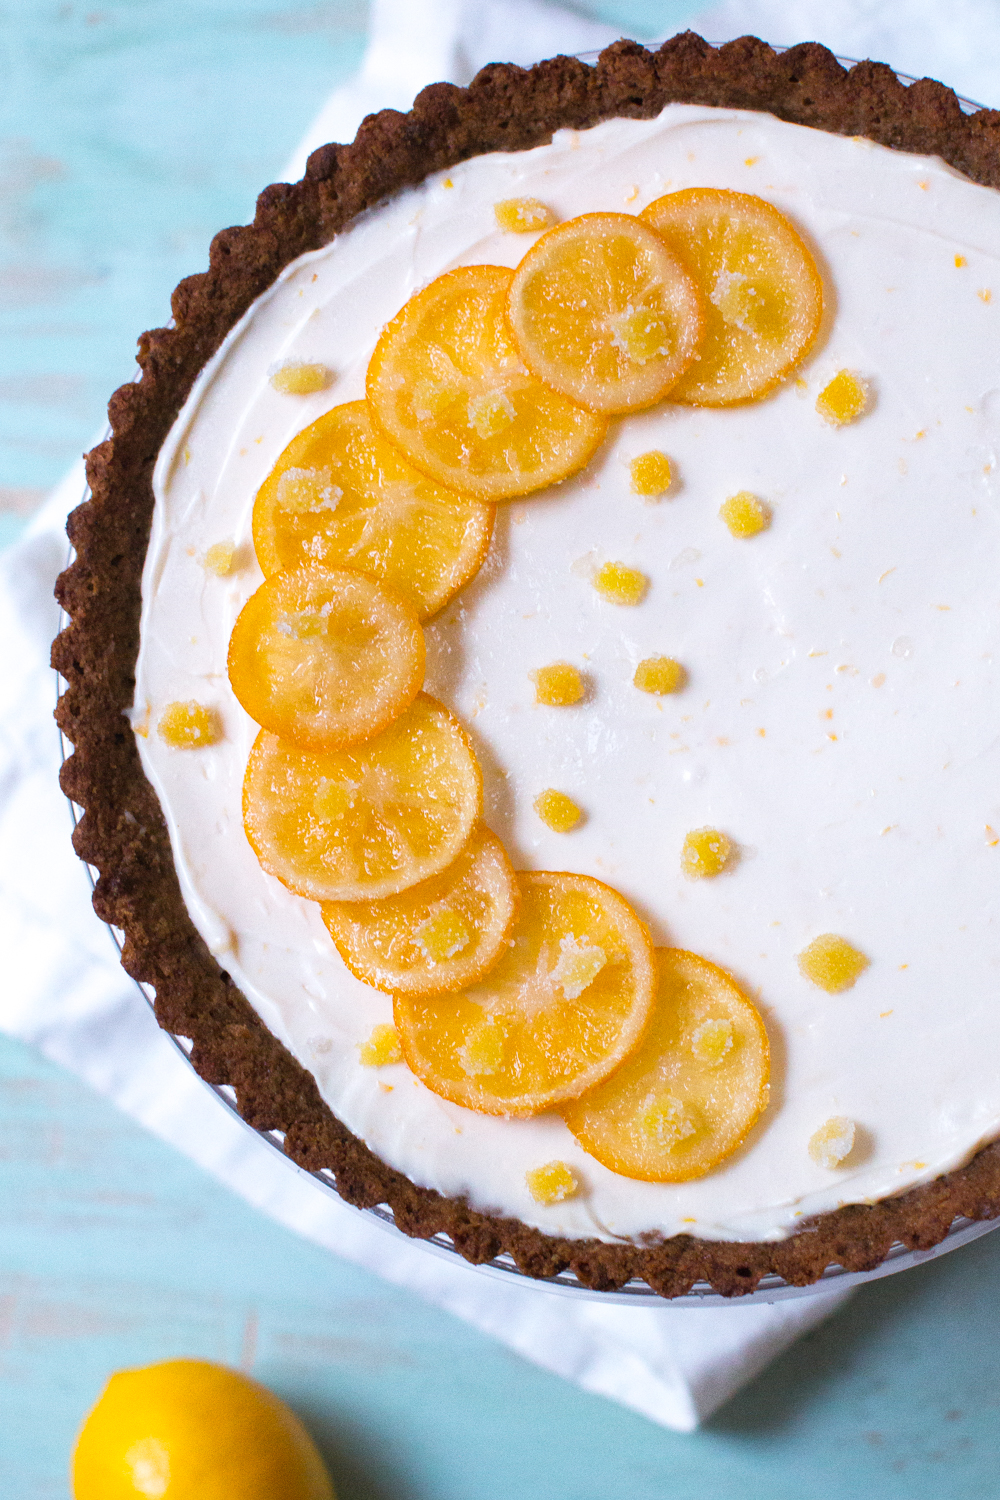 Top the Meyer Lemon Ginger Molasses Tart with the candied meyer lemon and ginger